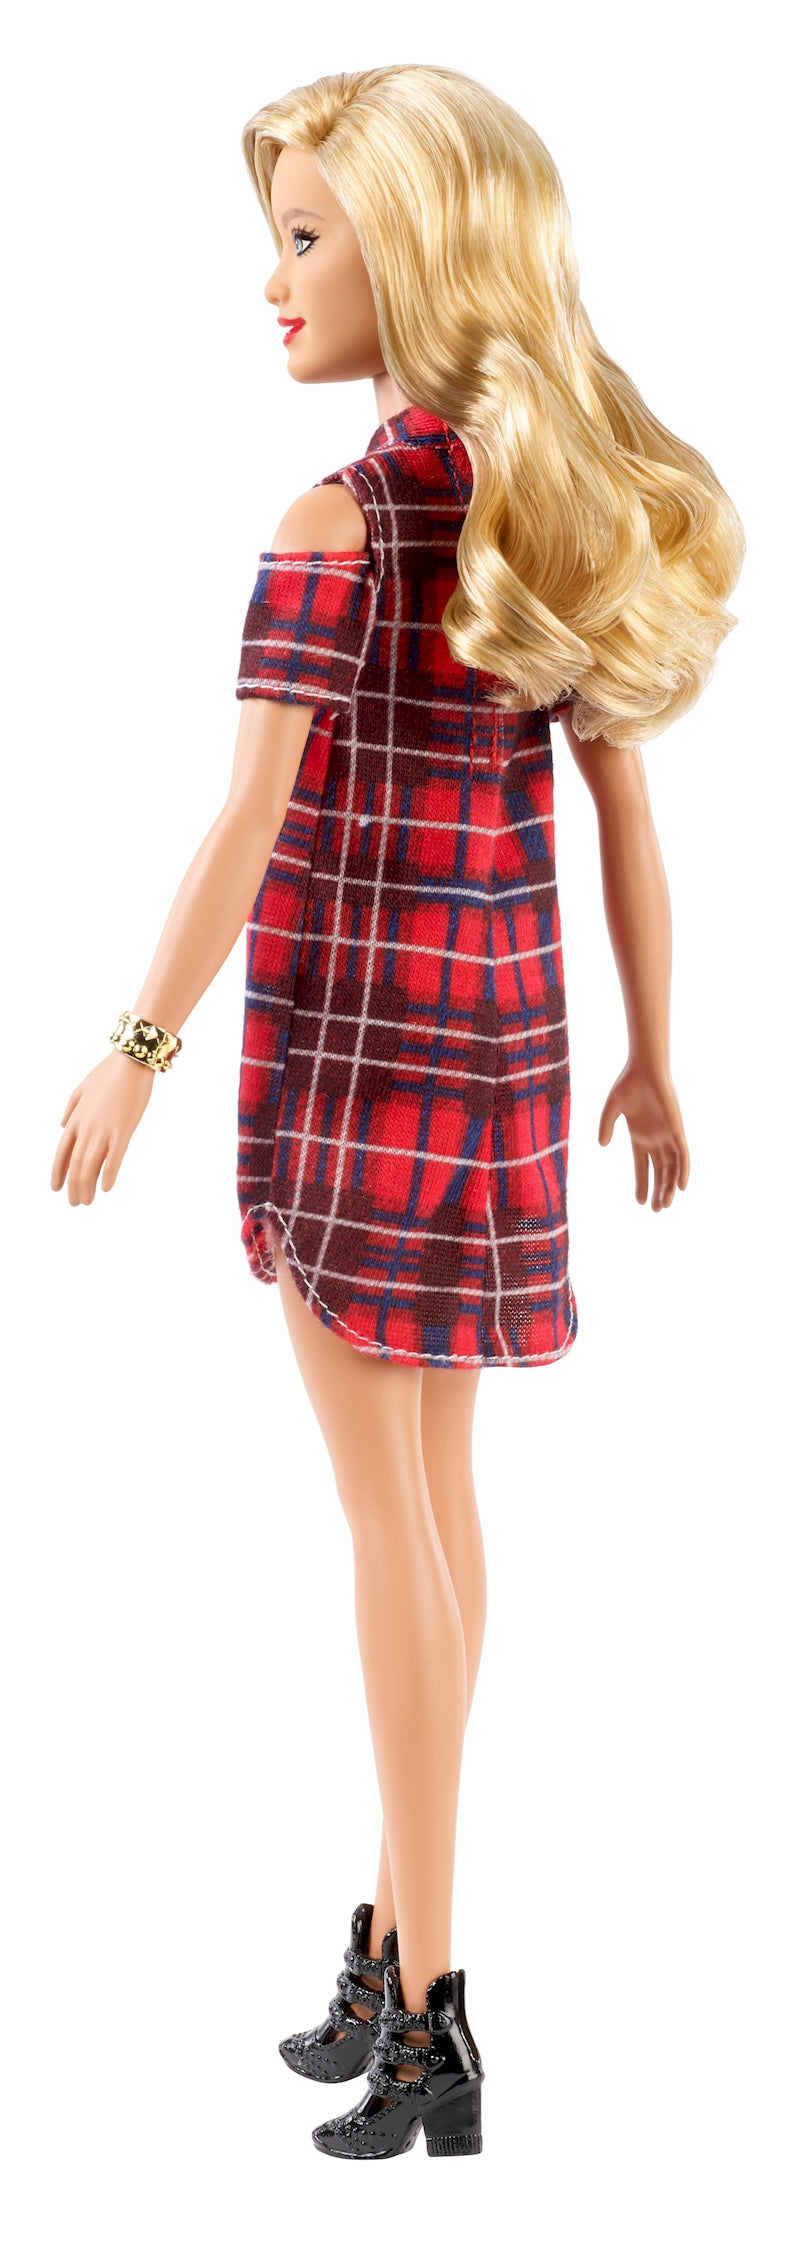 BARBIE FASHIONISTA 113